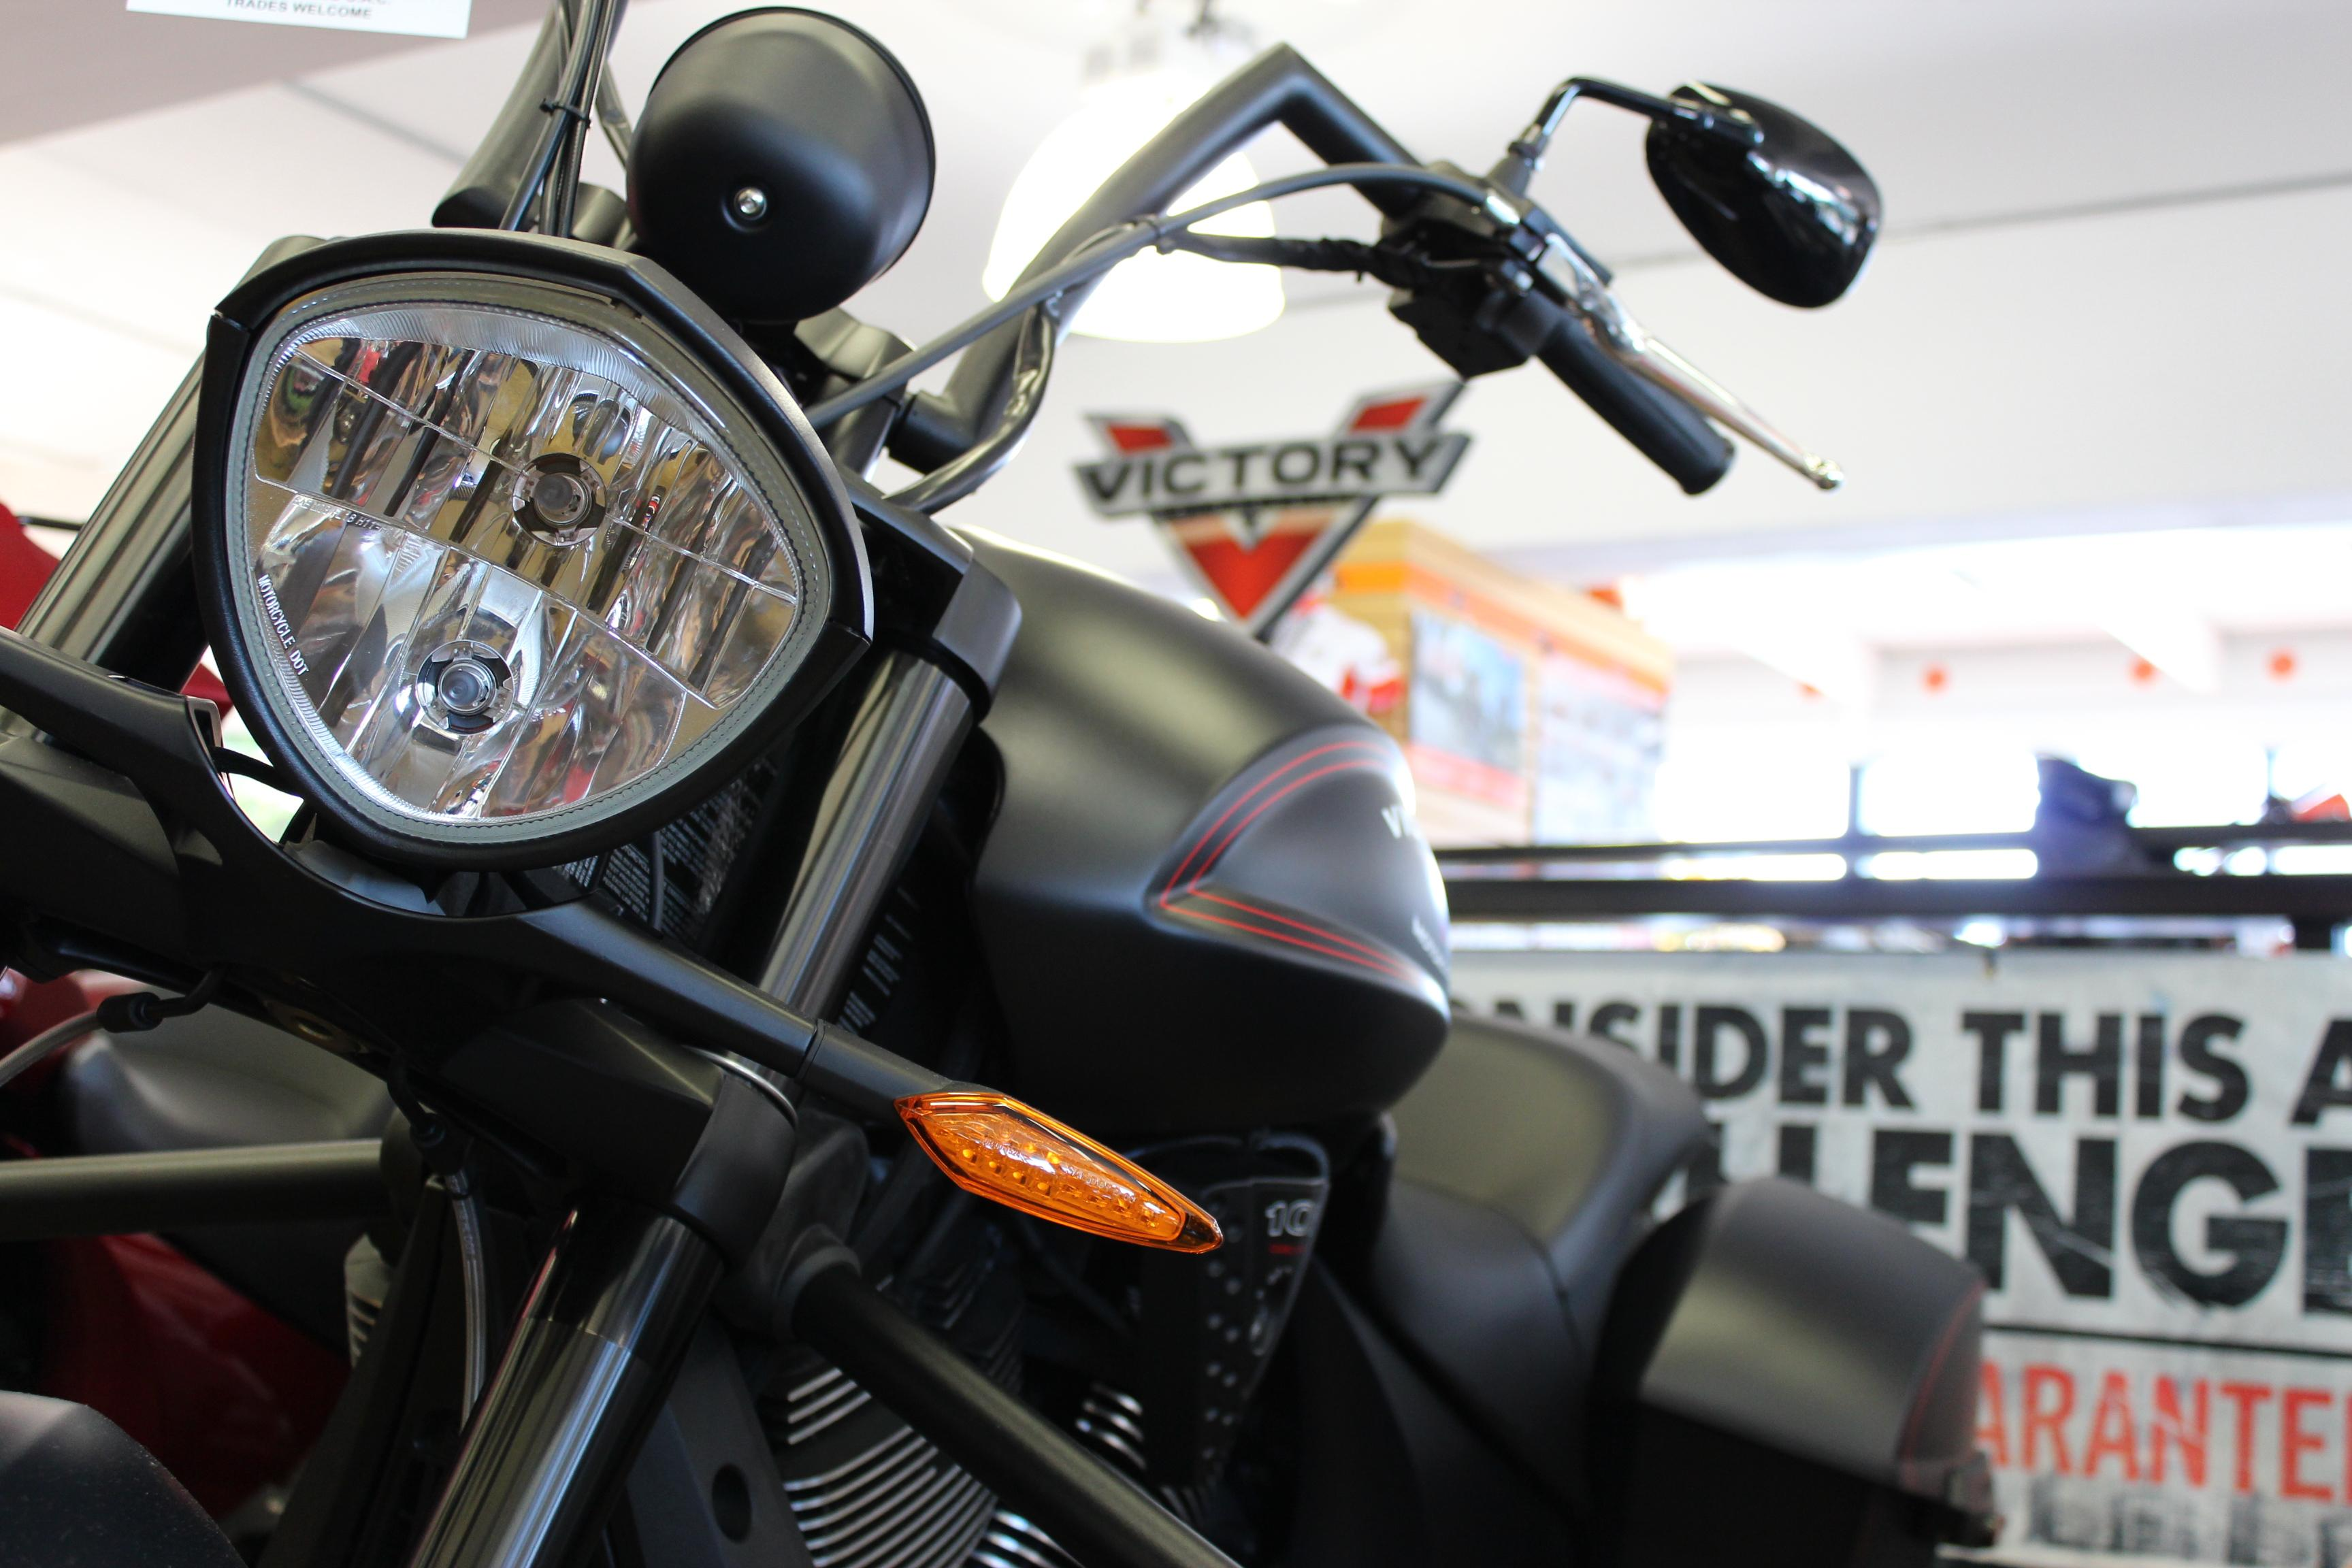 Action Motorcycles Victoria BC, Honda Suzuki KTM Yamaha Victory Motorcycles    Why Not Buy From The Best?   Our Gallery